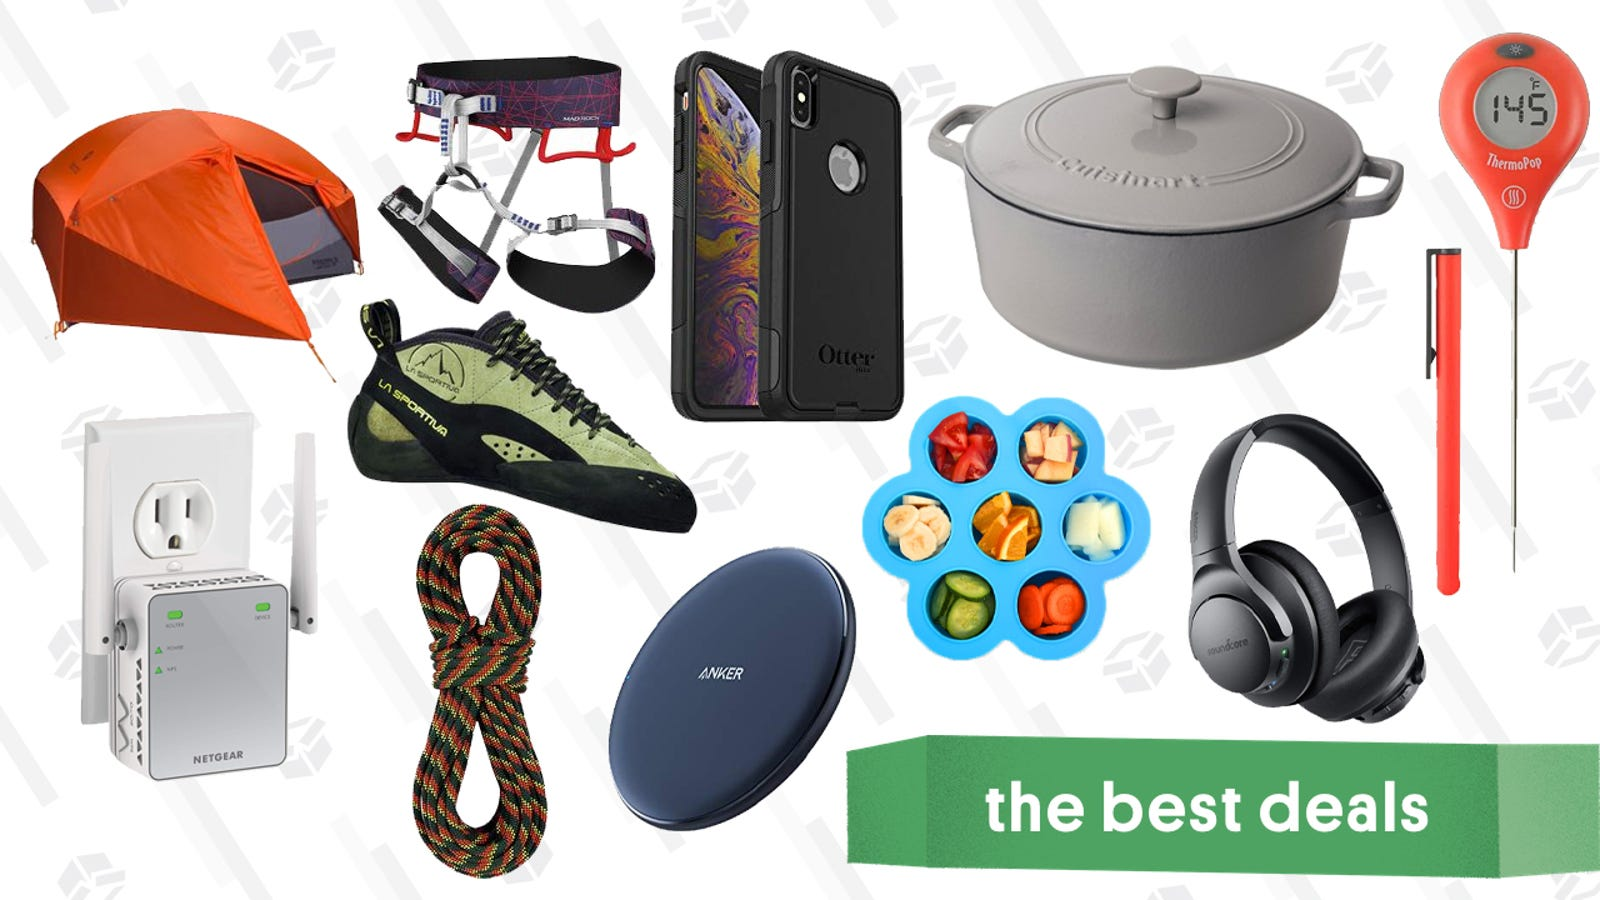 Tuesday's Best Deals: Milwaukee Tools, Thermopop, Otterbox, Backcountry, and More